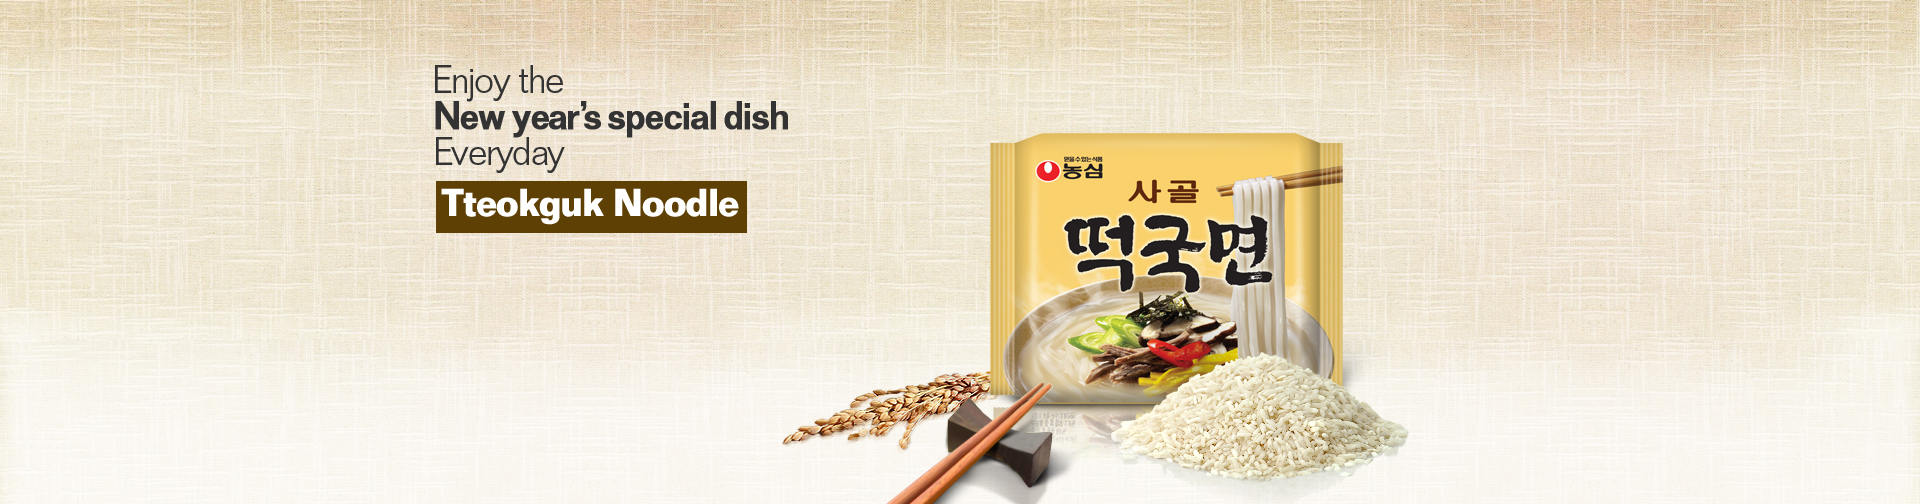 Enjoy the New year's special dish  Everyday Tteokguk Noodle